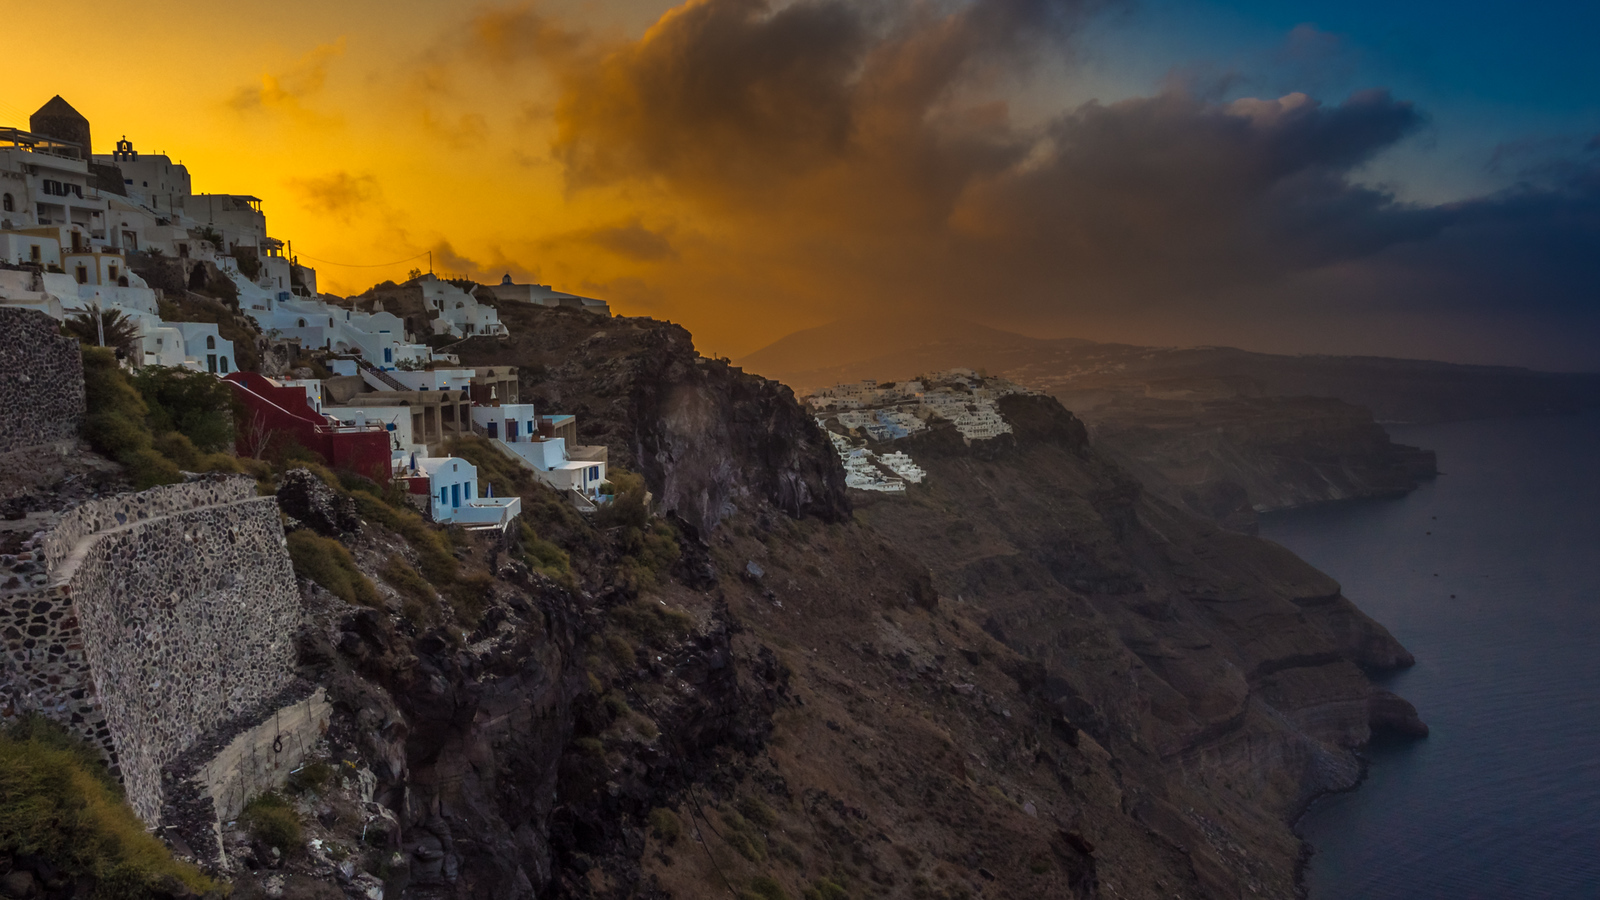 Morning dawns in Santorini